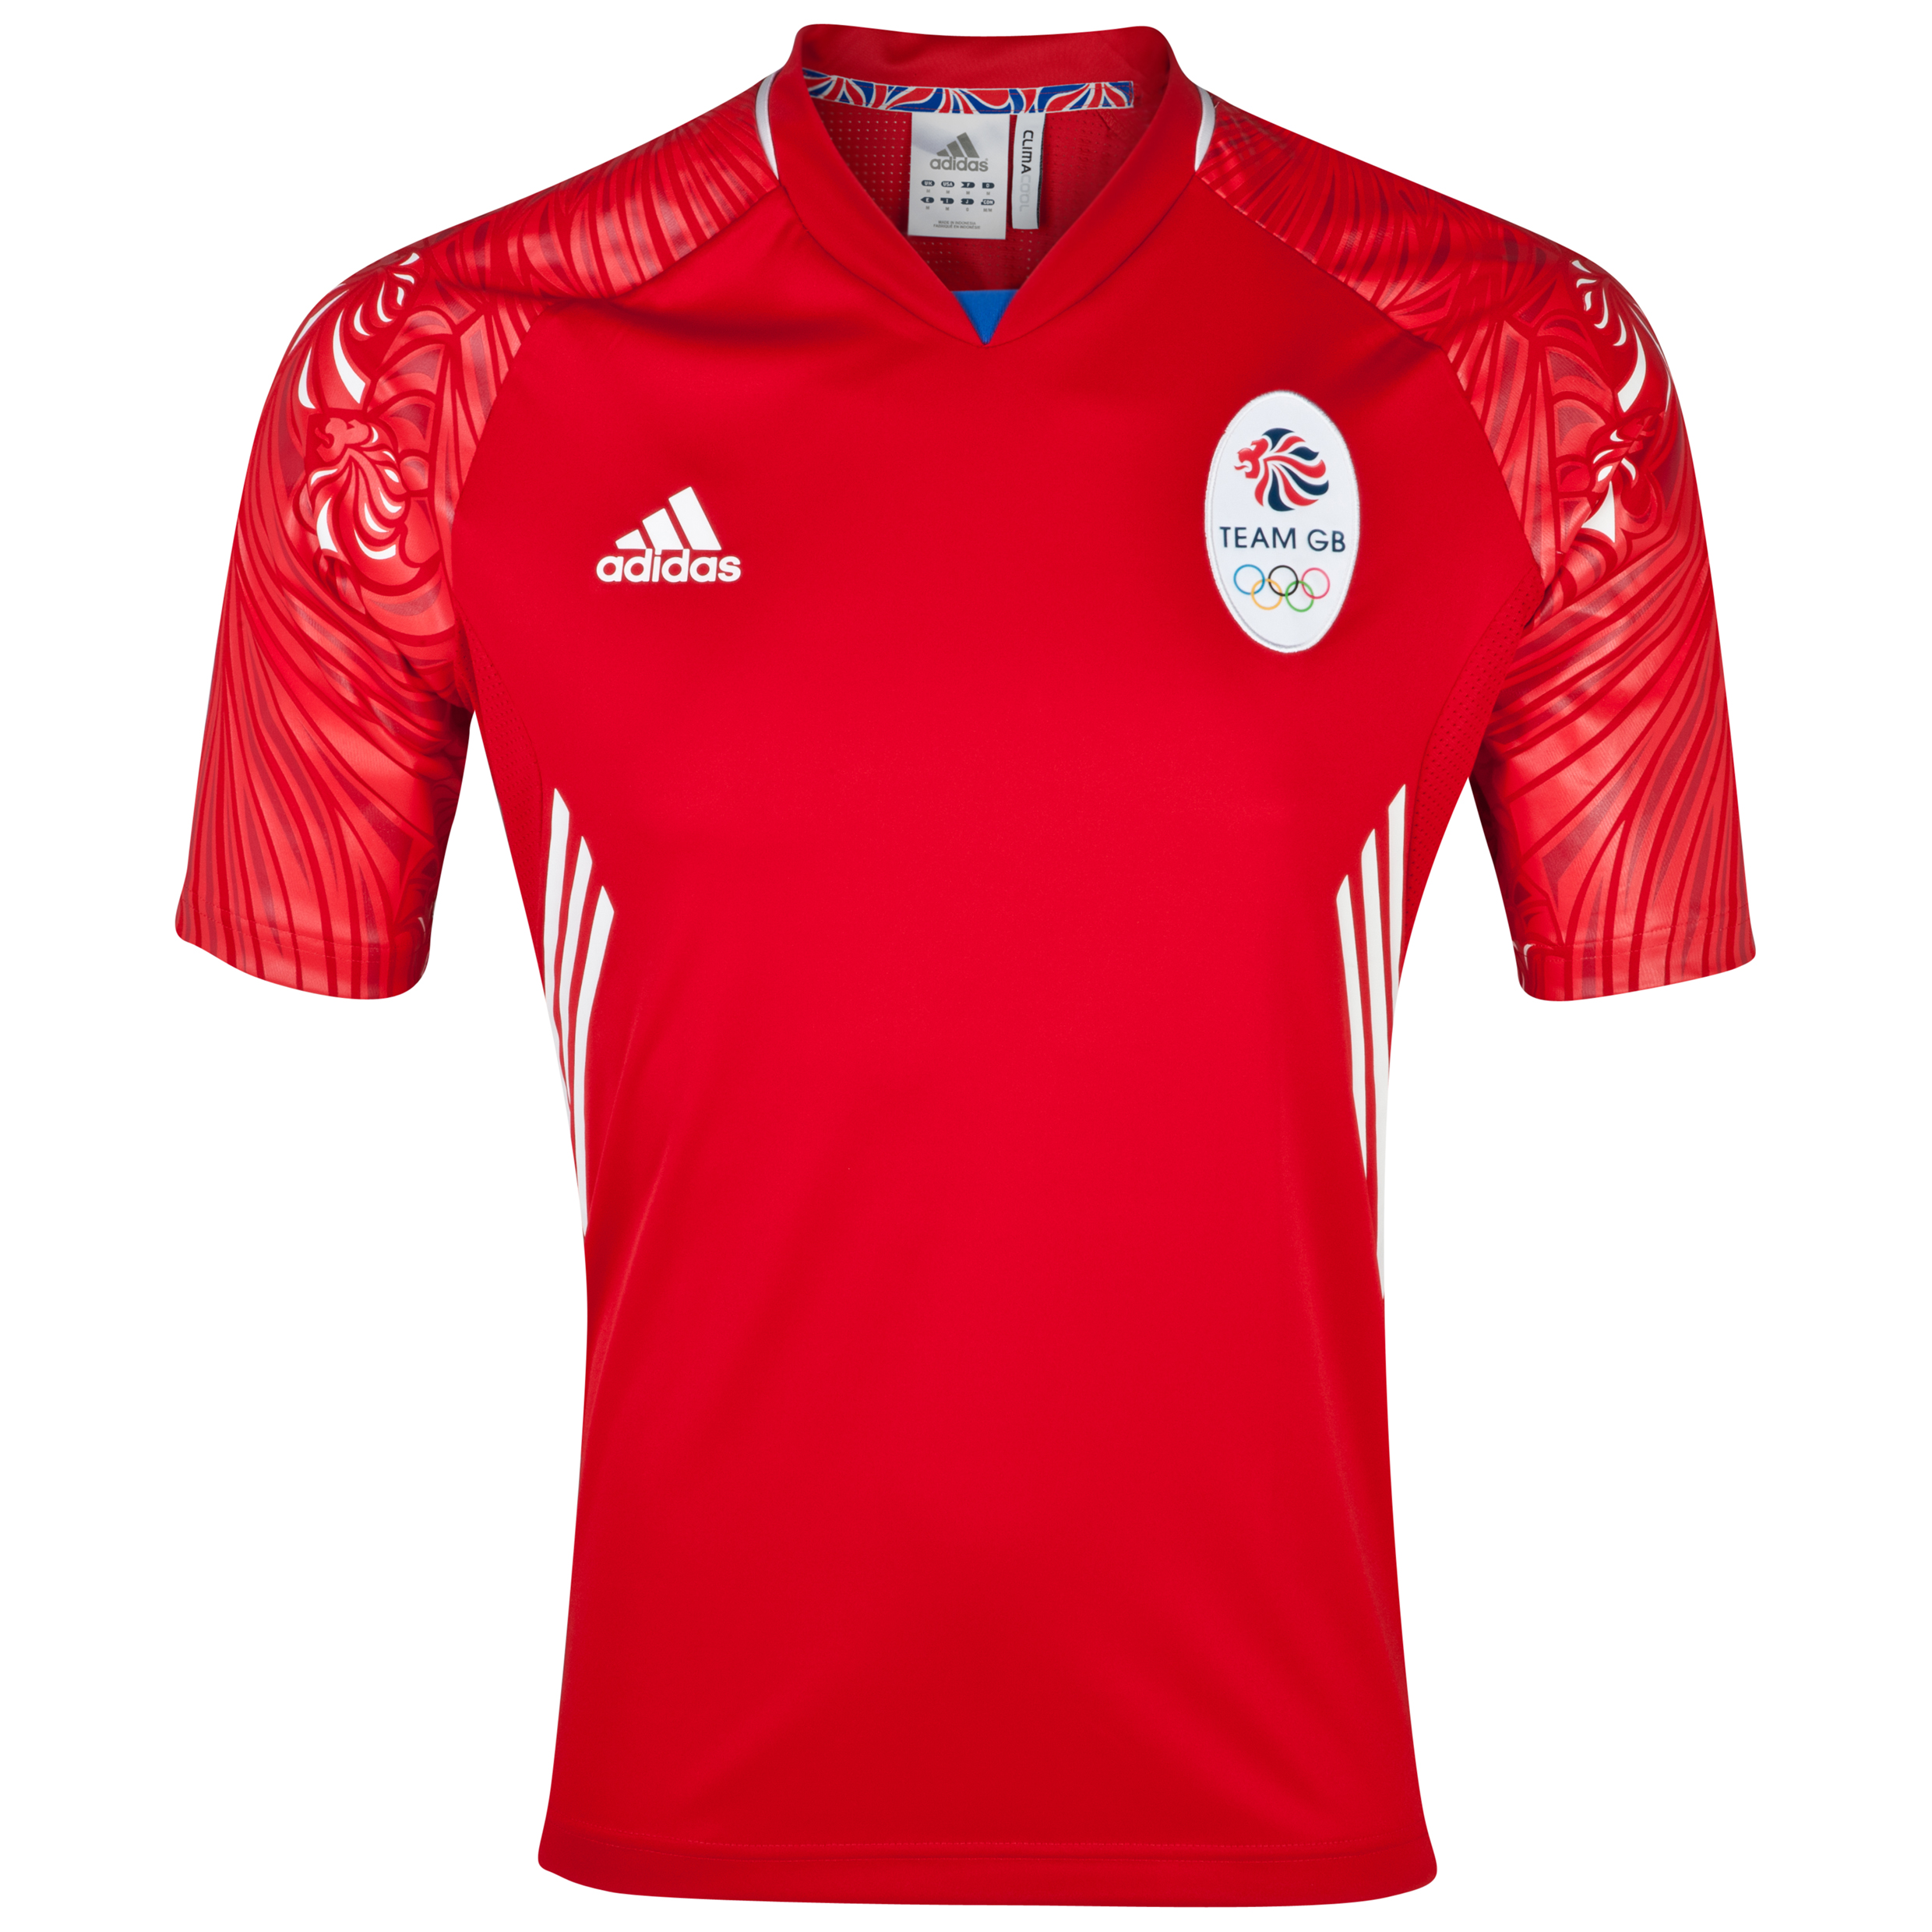 adidas Team GB Icon Jersey Light Scarlet/Light Onix